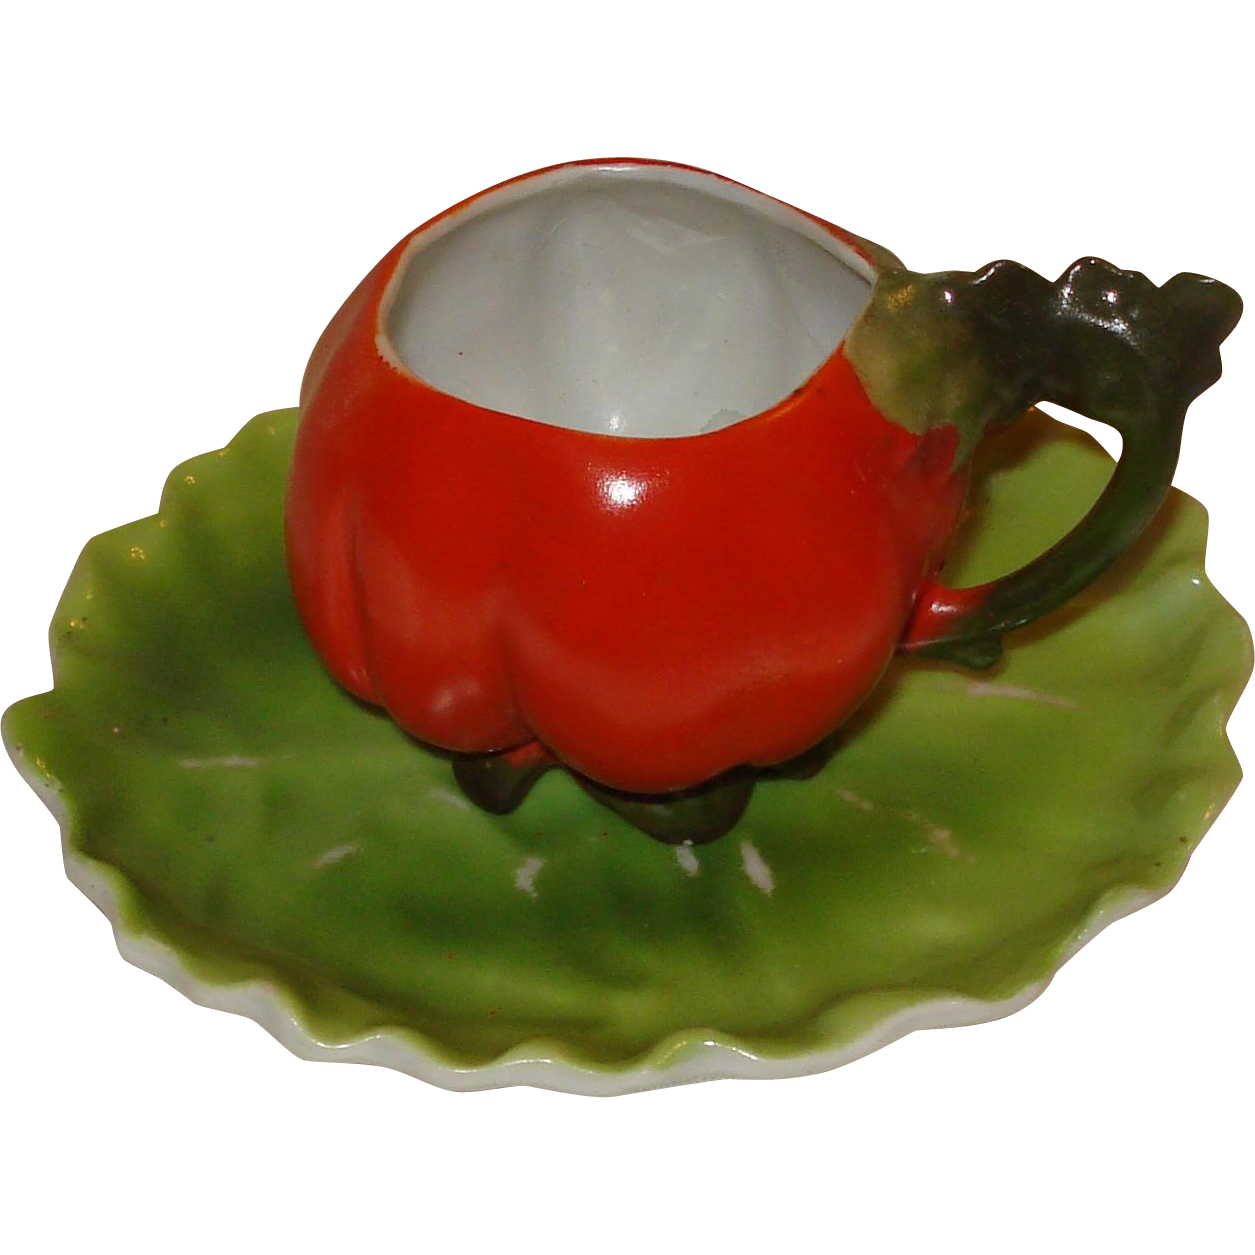 Royal Bayreuth Tomato Demi with Lettuce Leaf Plate